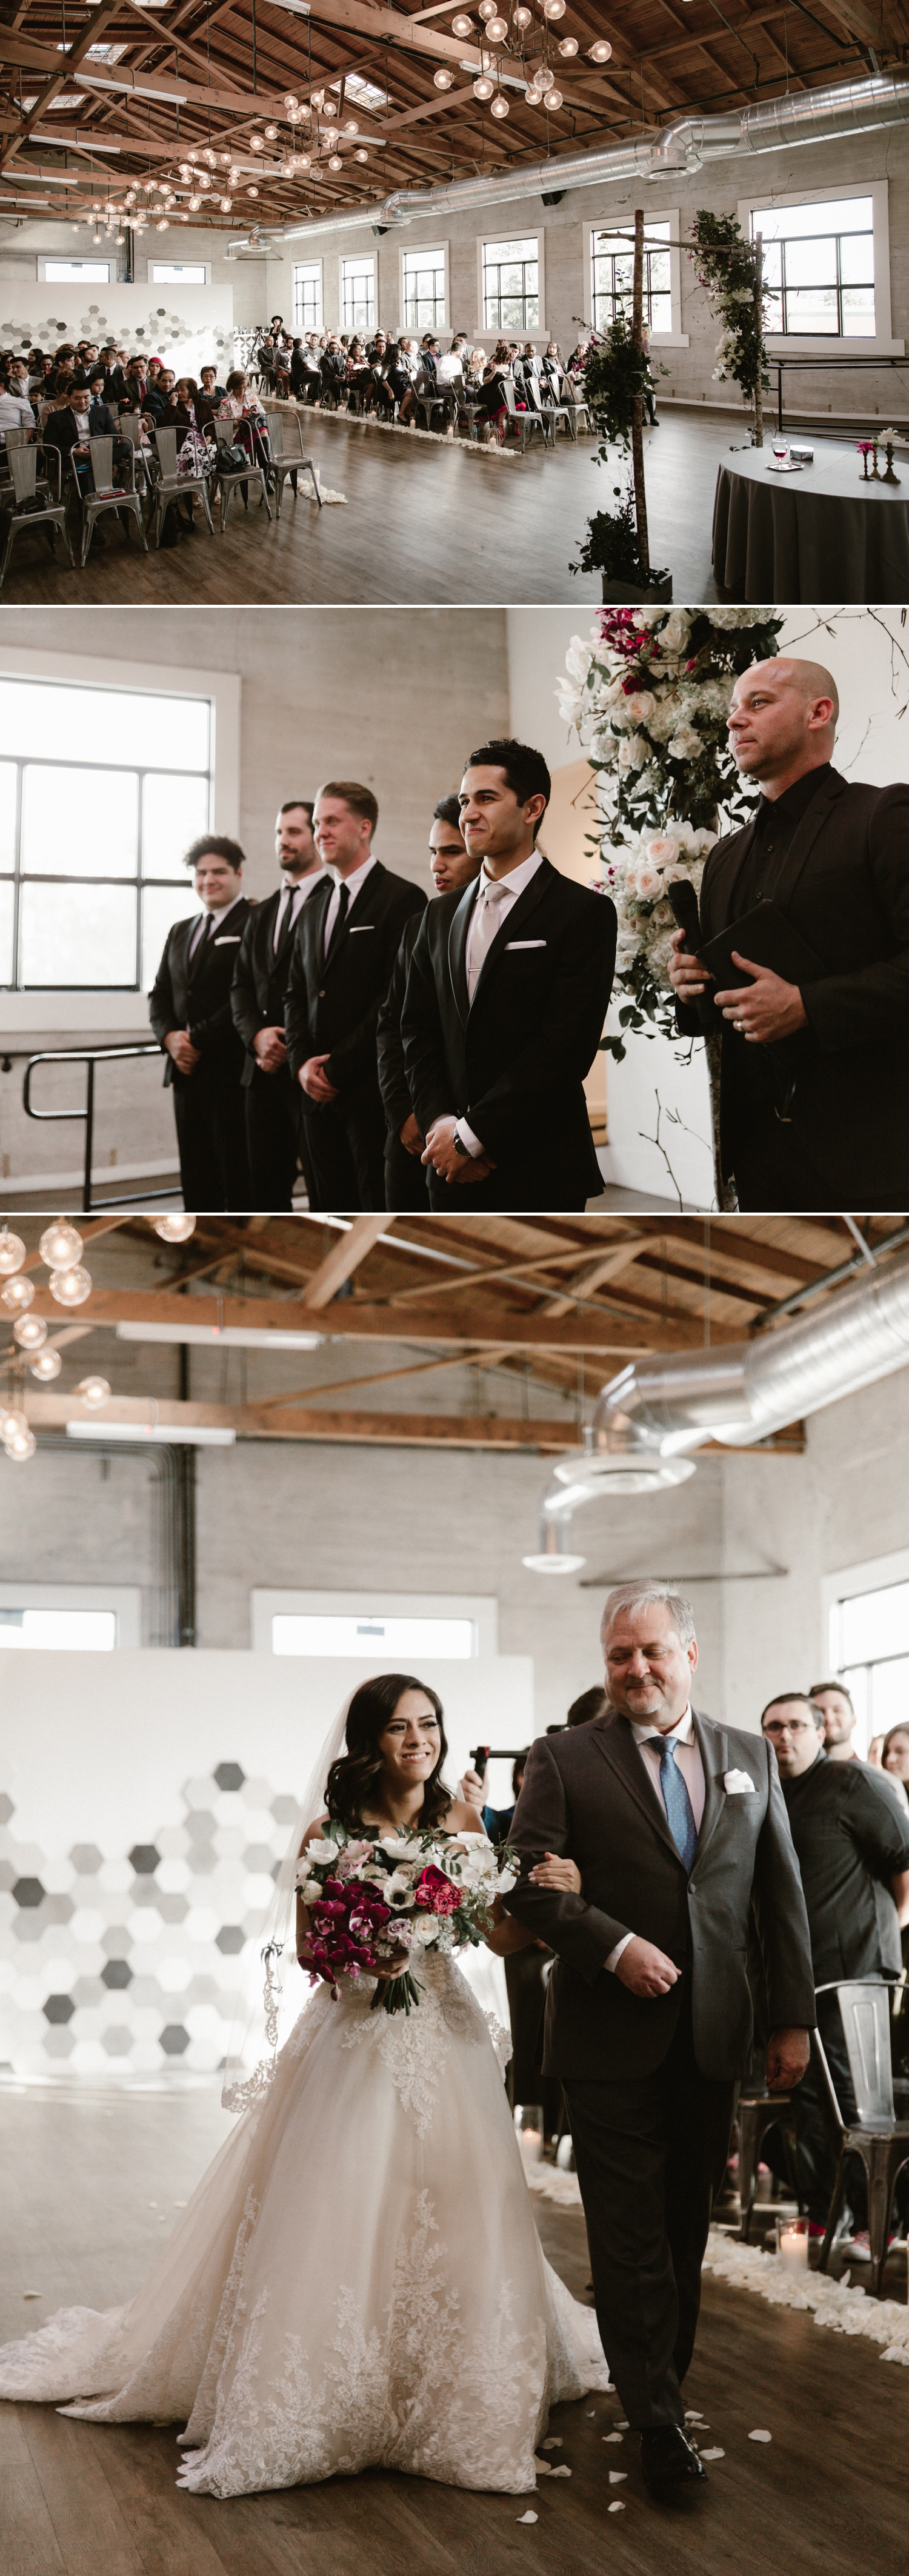 Indoor wedding ceremony at 1912 in Santa Ana by Paige Nelson